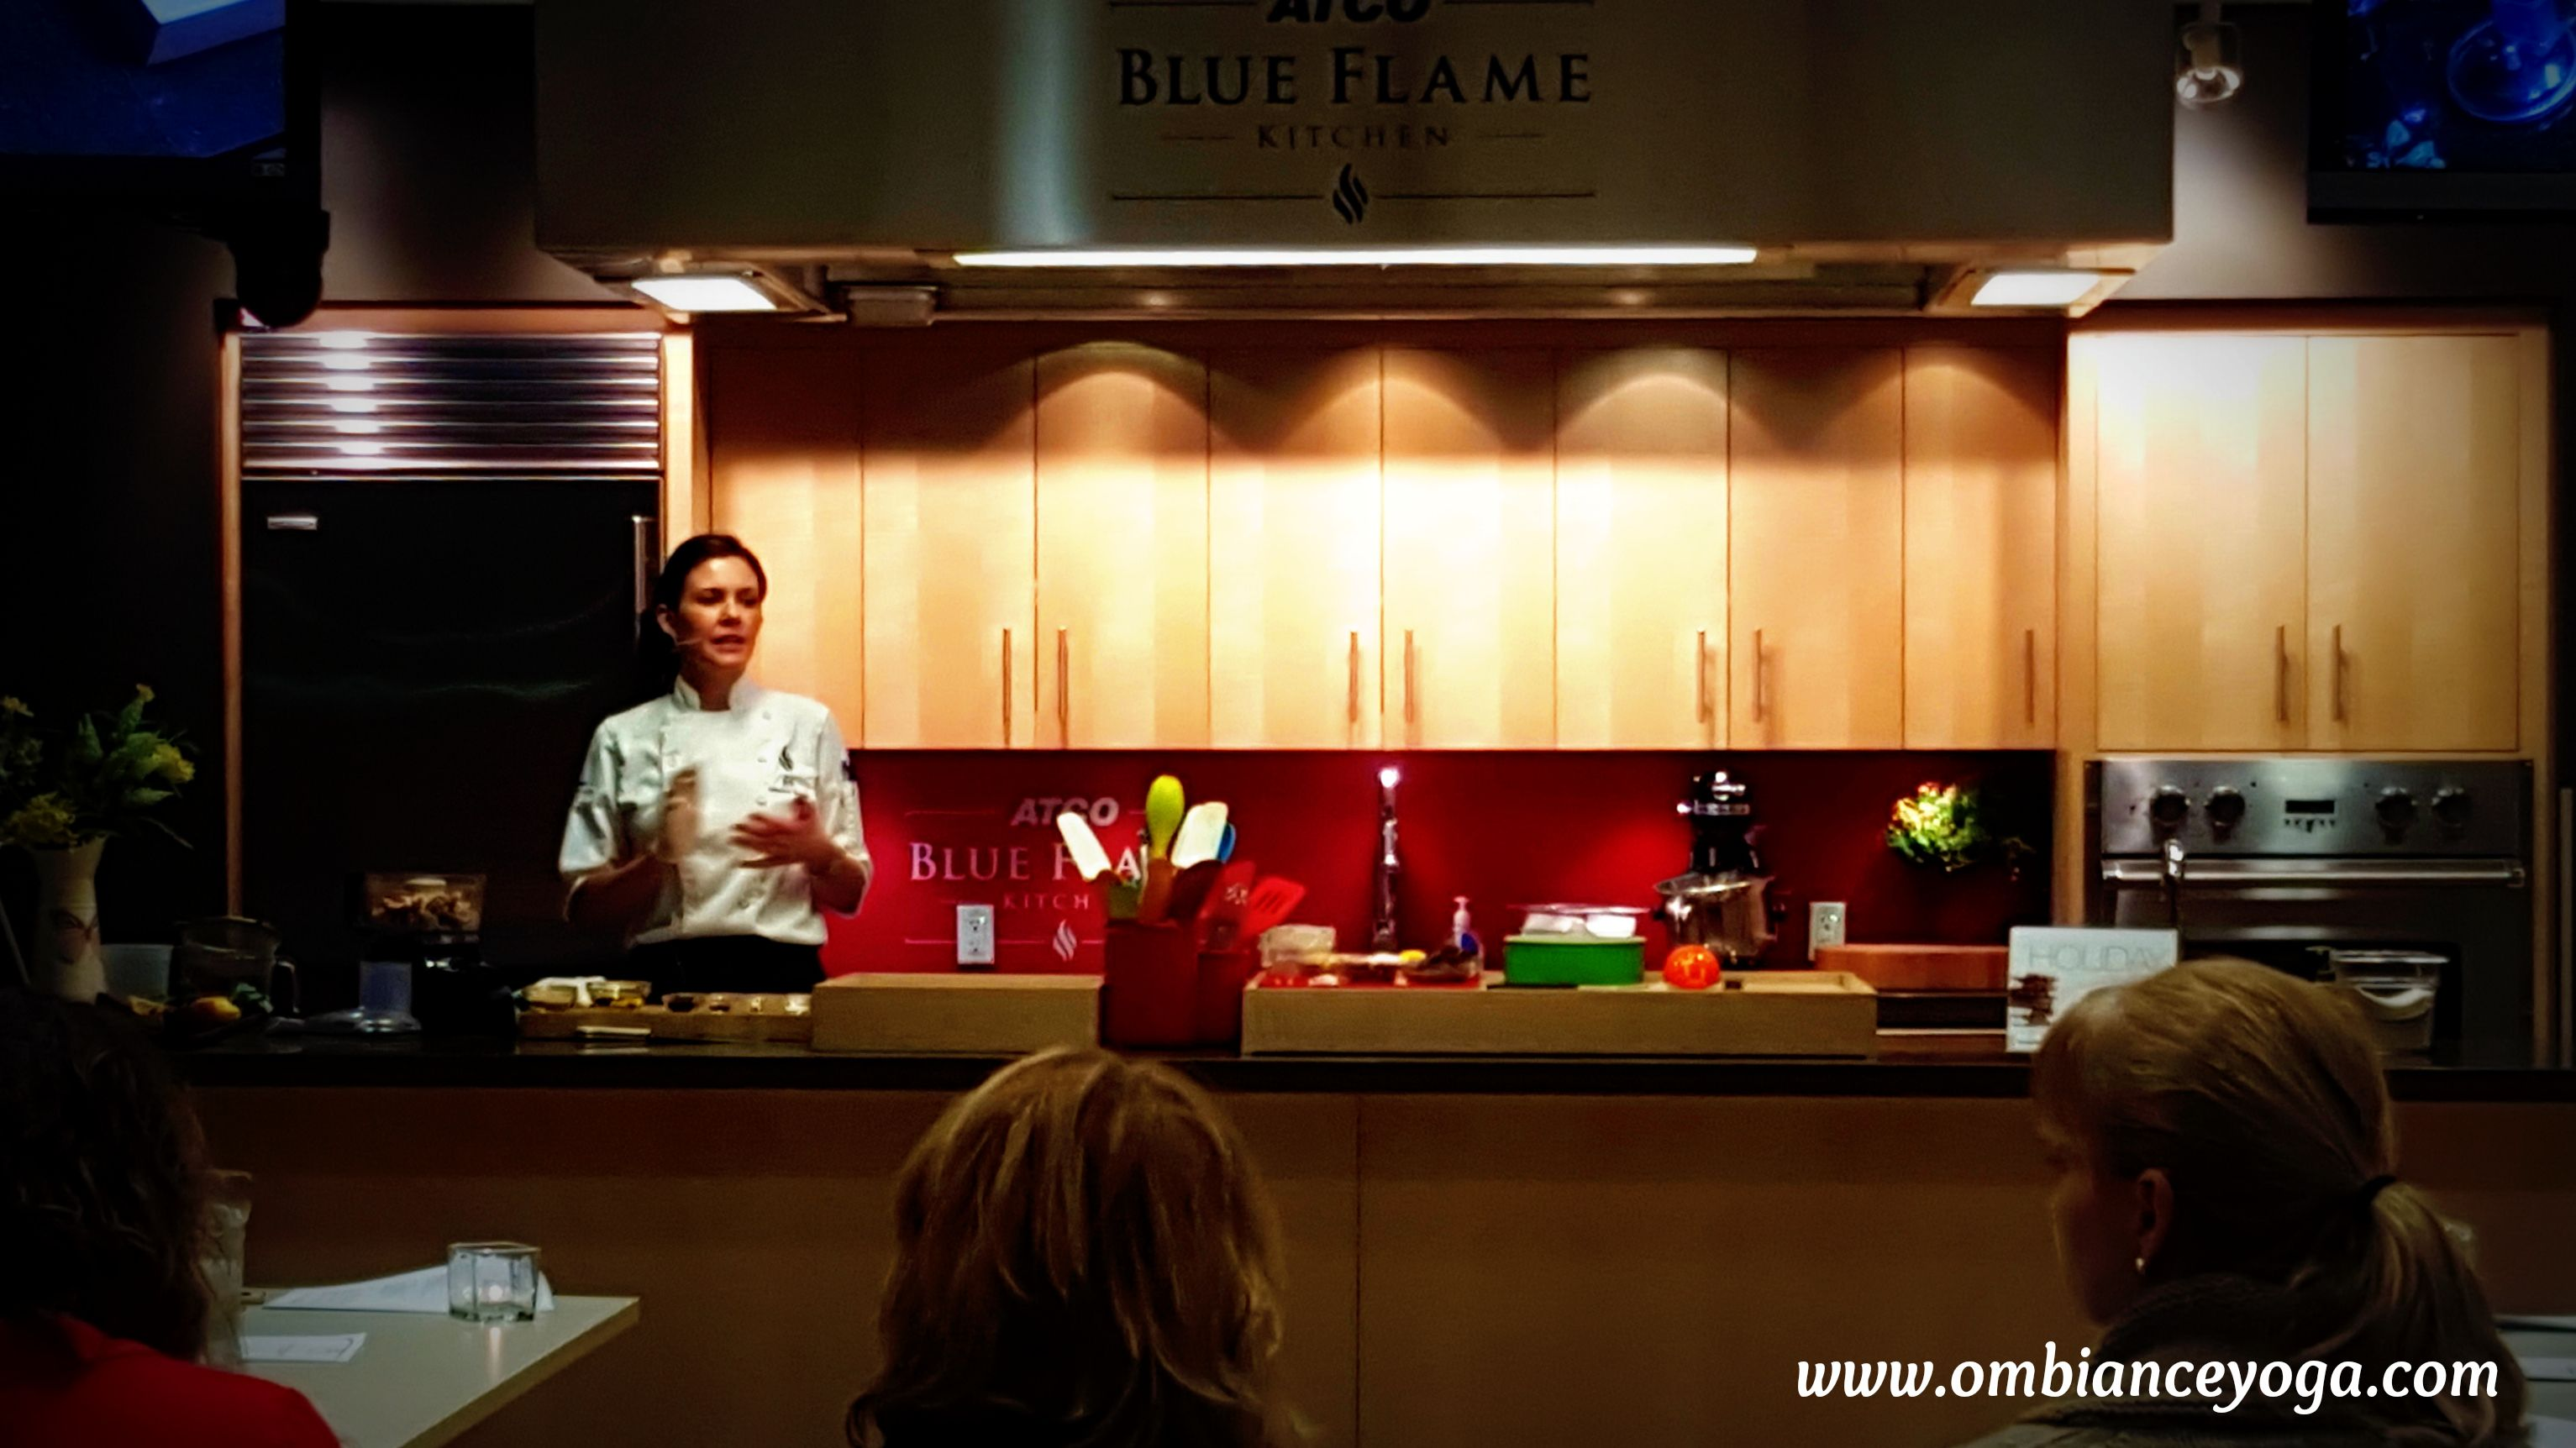 Blue Flame Kitchen Calgary Had A Fantastic Full House For Our Inaugural Cooking And Yoga